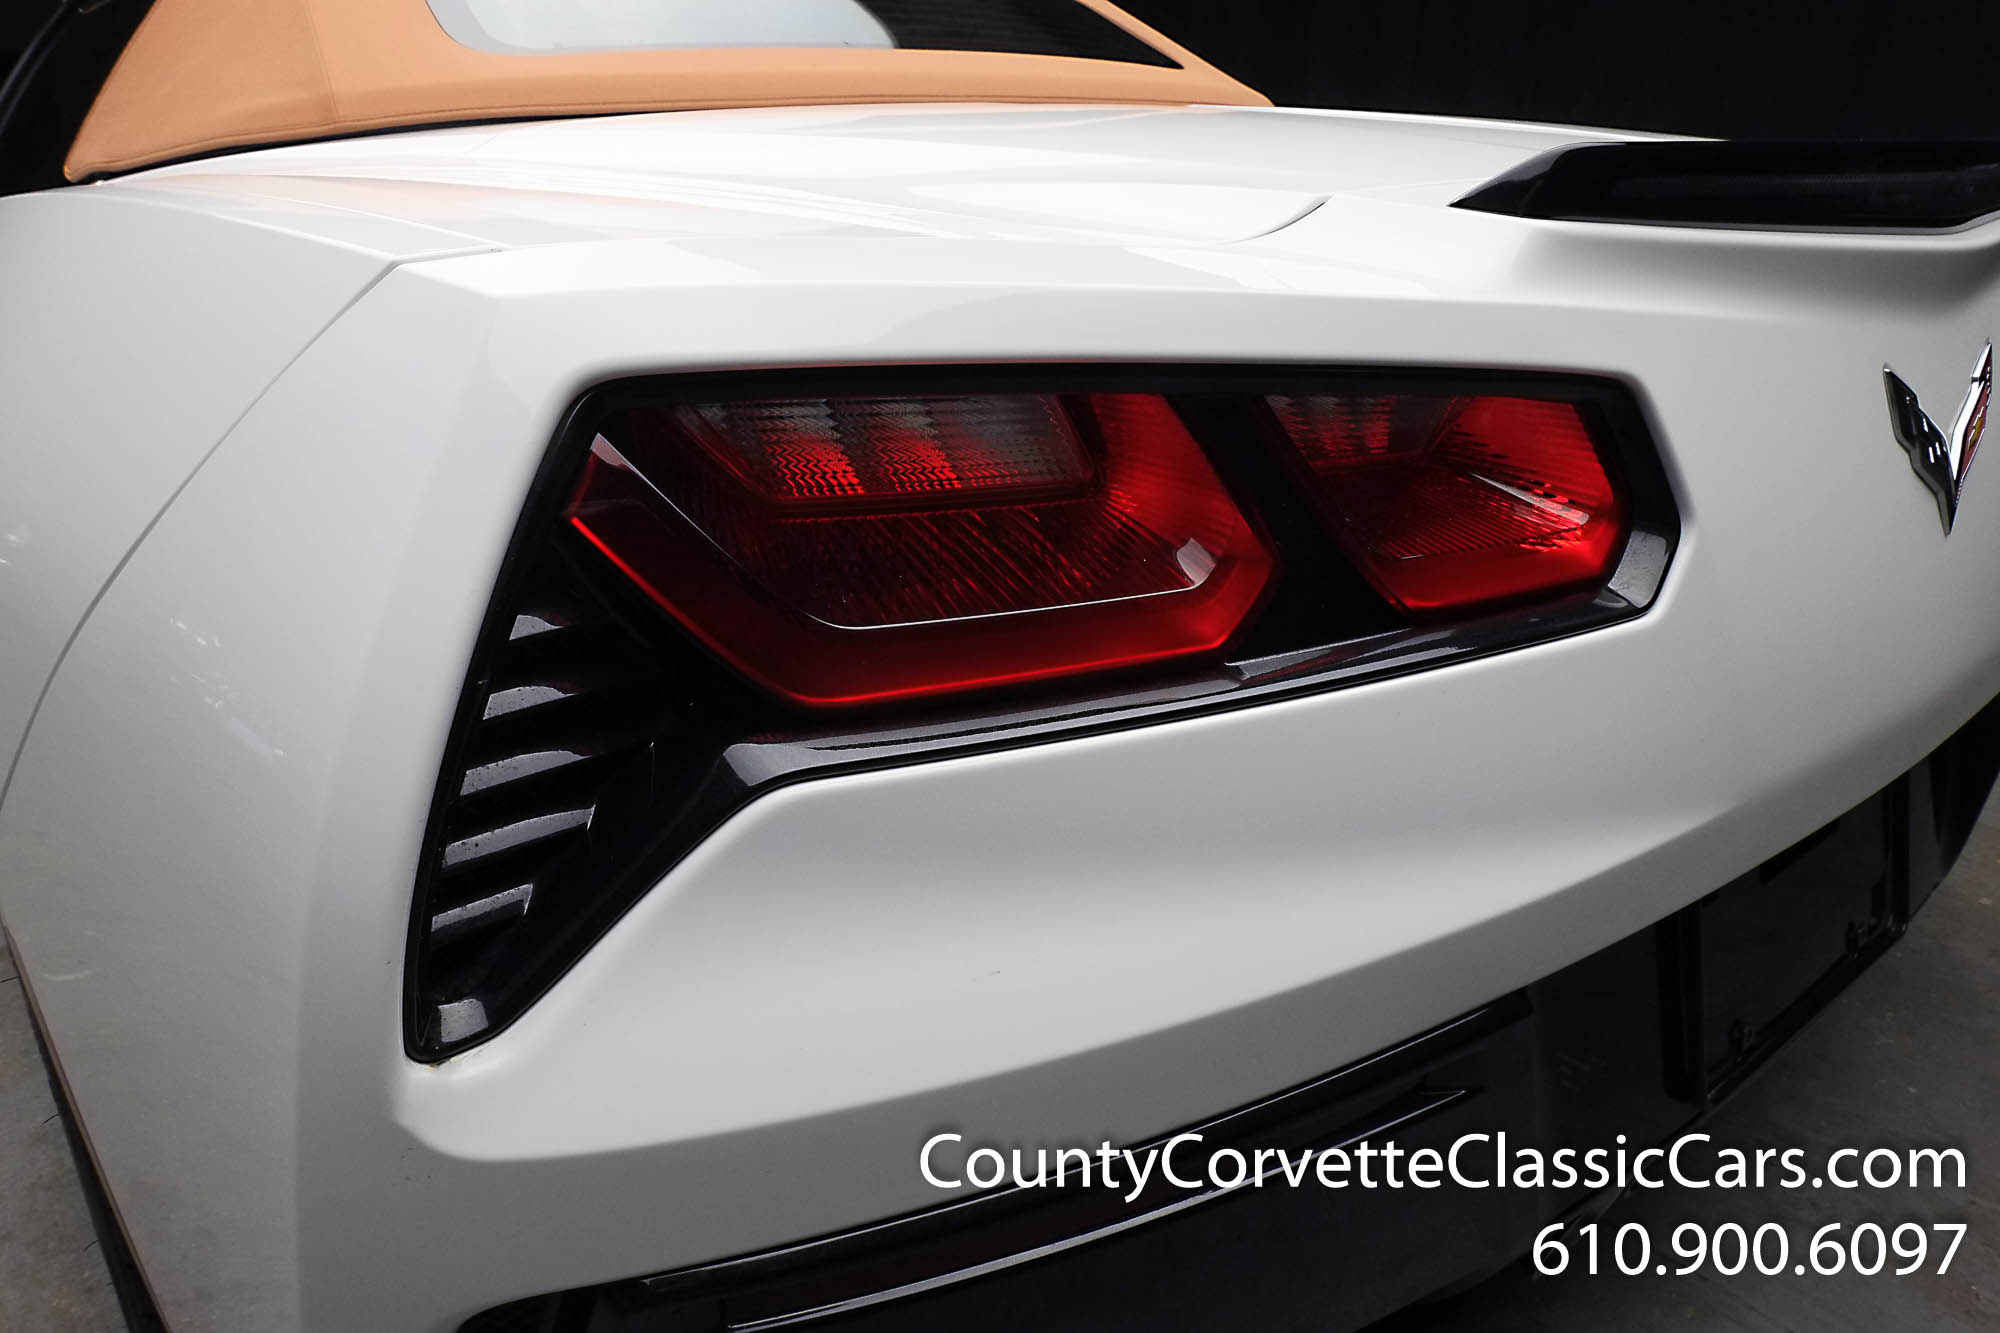 2014-Corvette-Stingray-Convertible-16.jpg